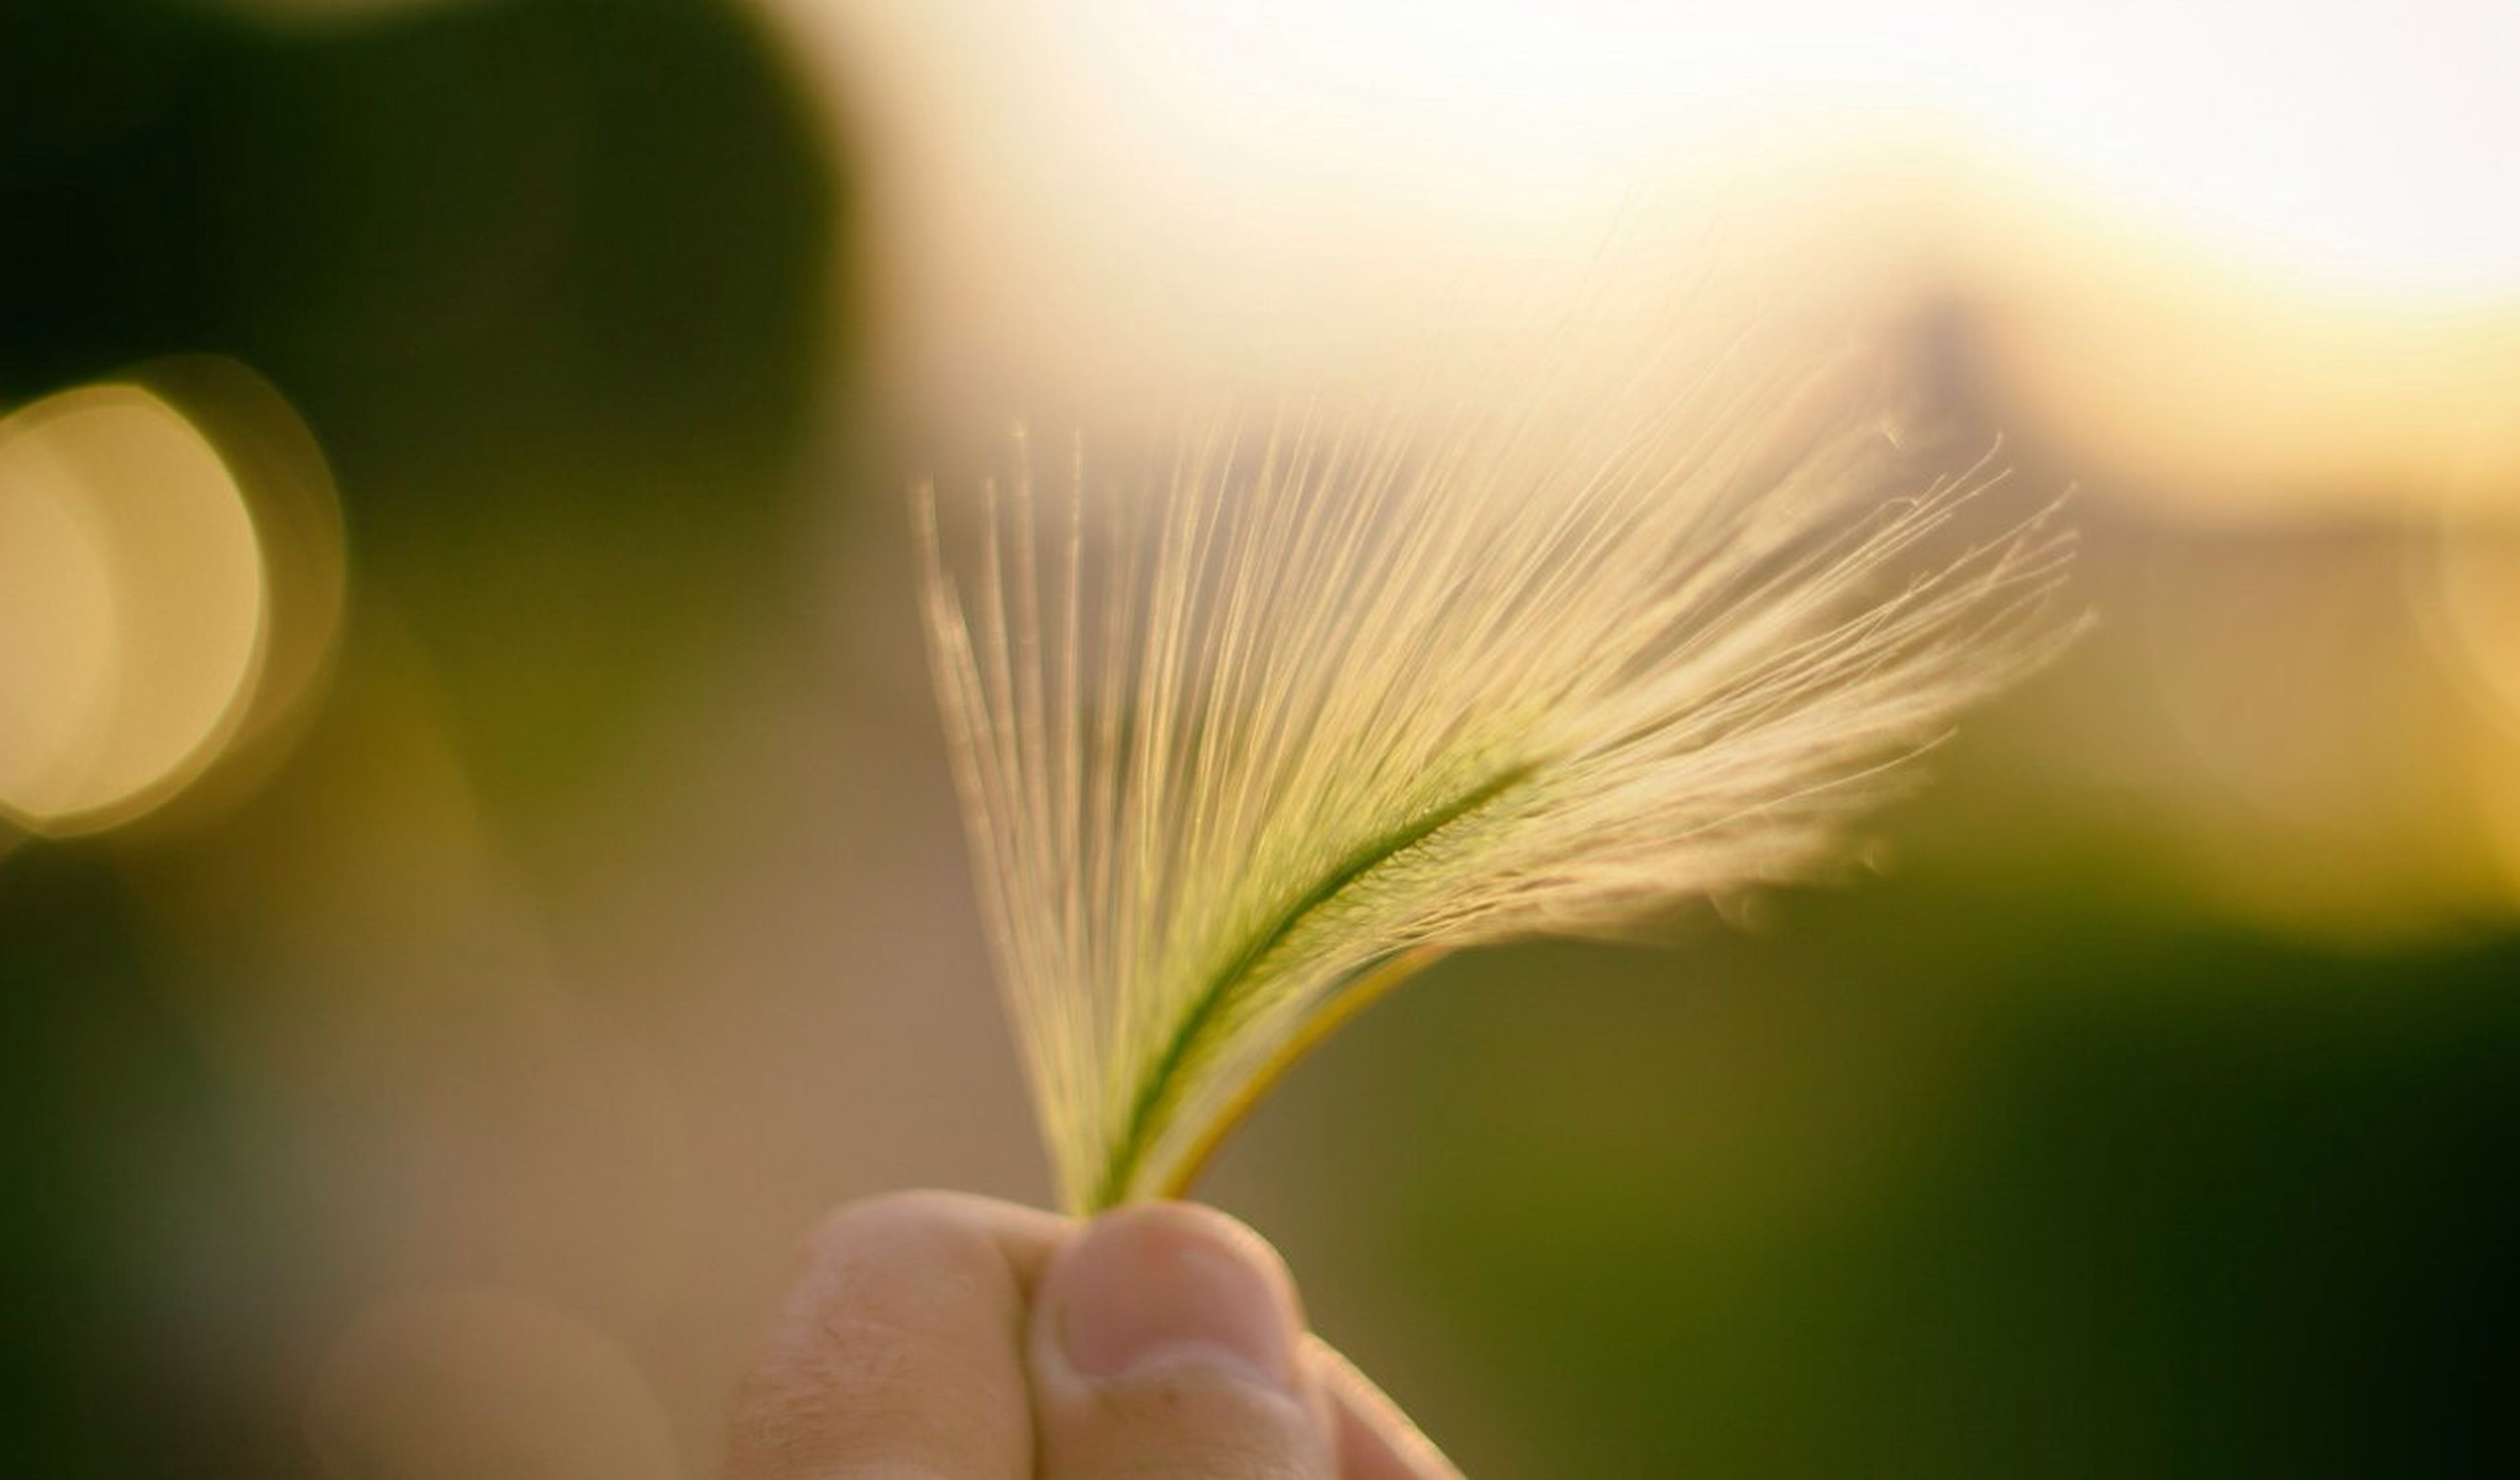 person, focus on foreground, close-up, part of, holding, cropped, human finger, nature, growth, flower, fragility, plant, beauty in nature, freshness, selective focus, sun, unrecognizable person